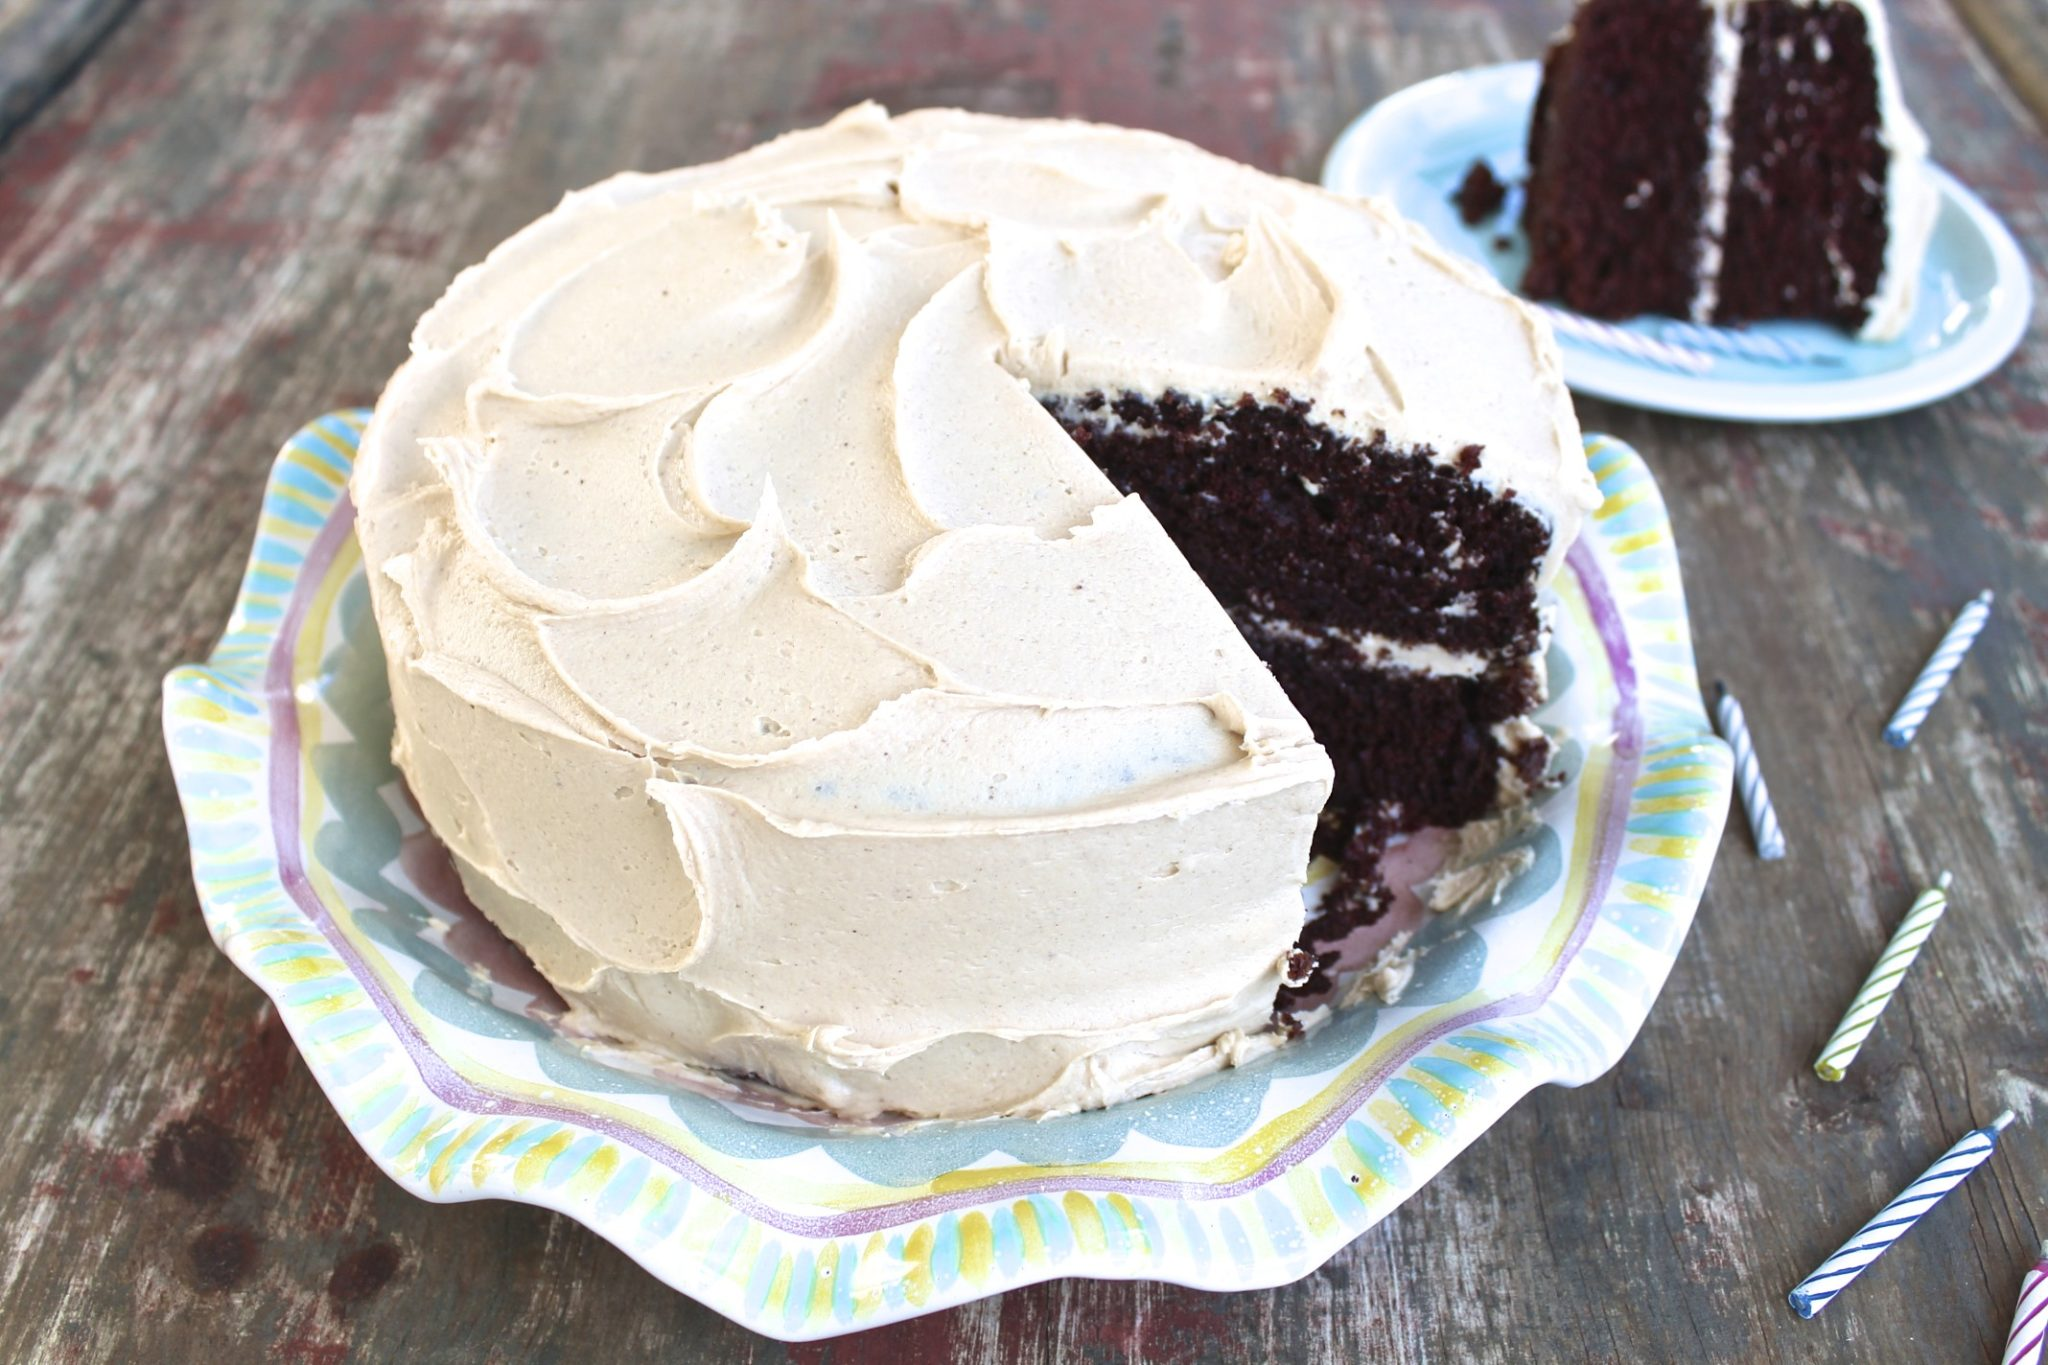 Hershey's Cocoa Cake -- a winning recipe and the gluten-free version is amazing